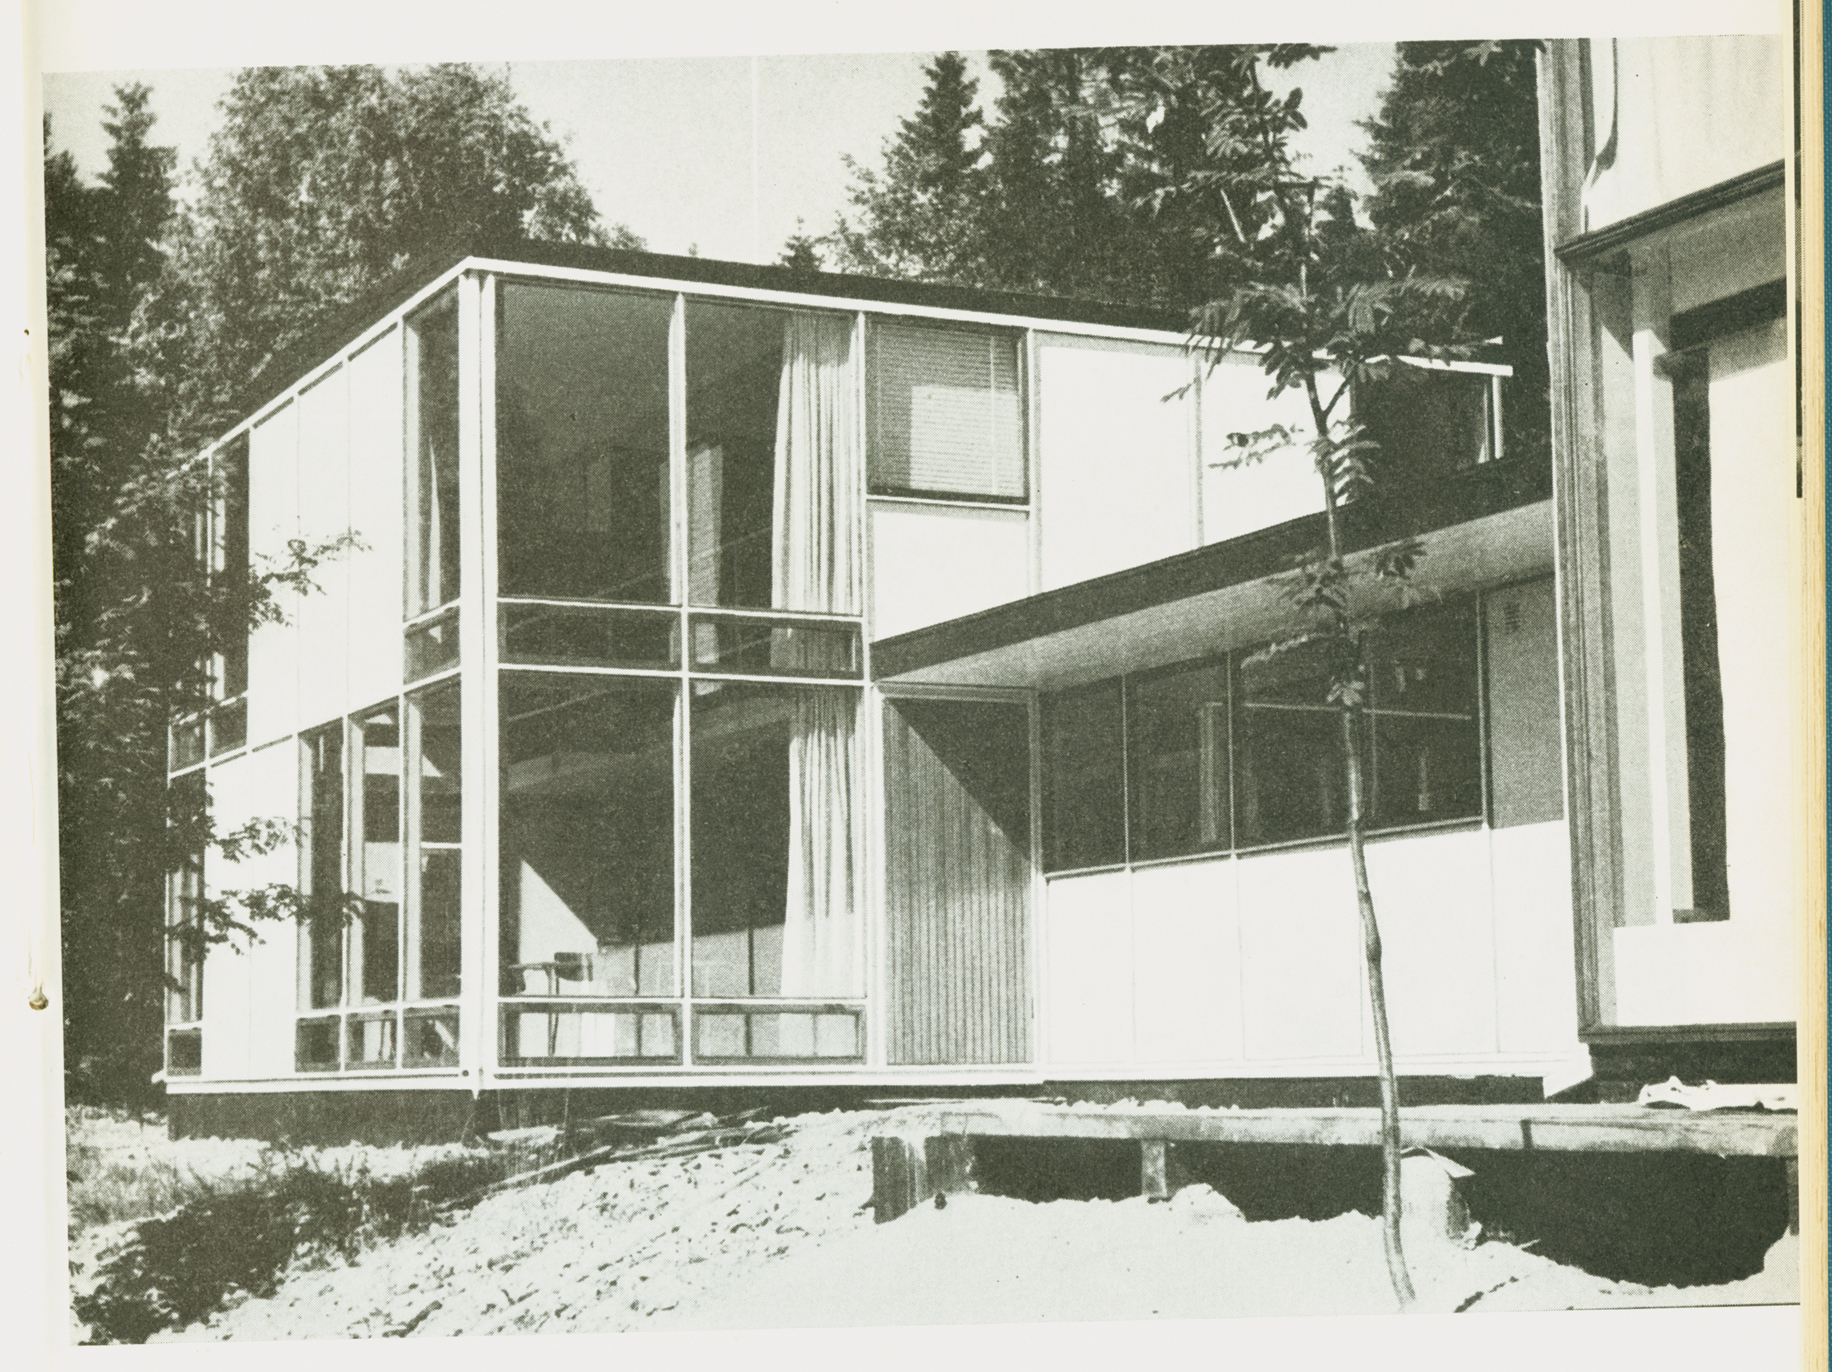 Norberg-Schulz's 1955 photograph of the garden façade of his Planetveien house.